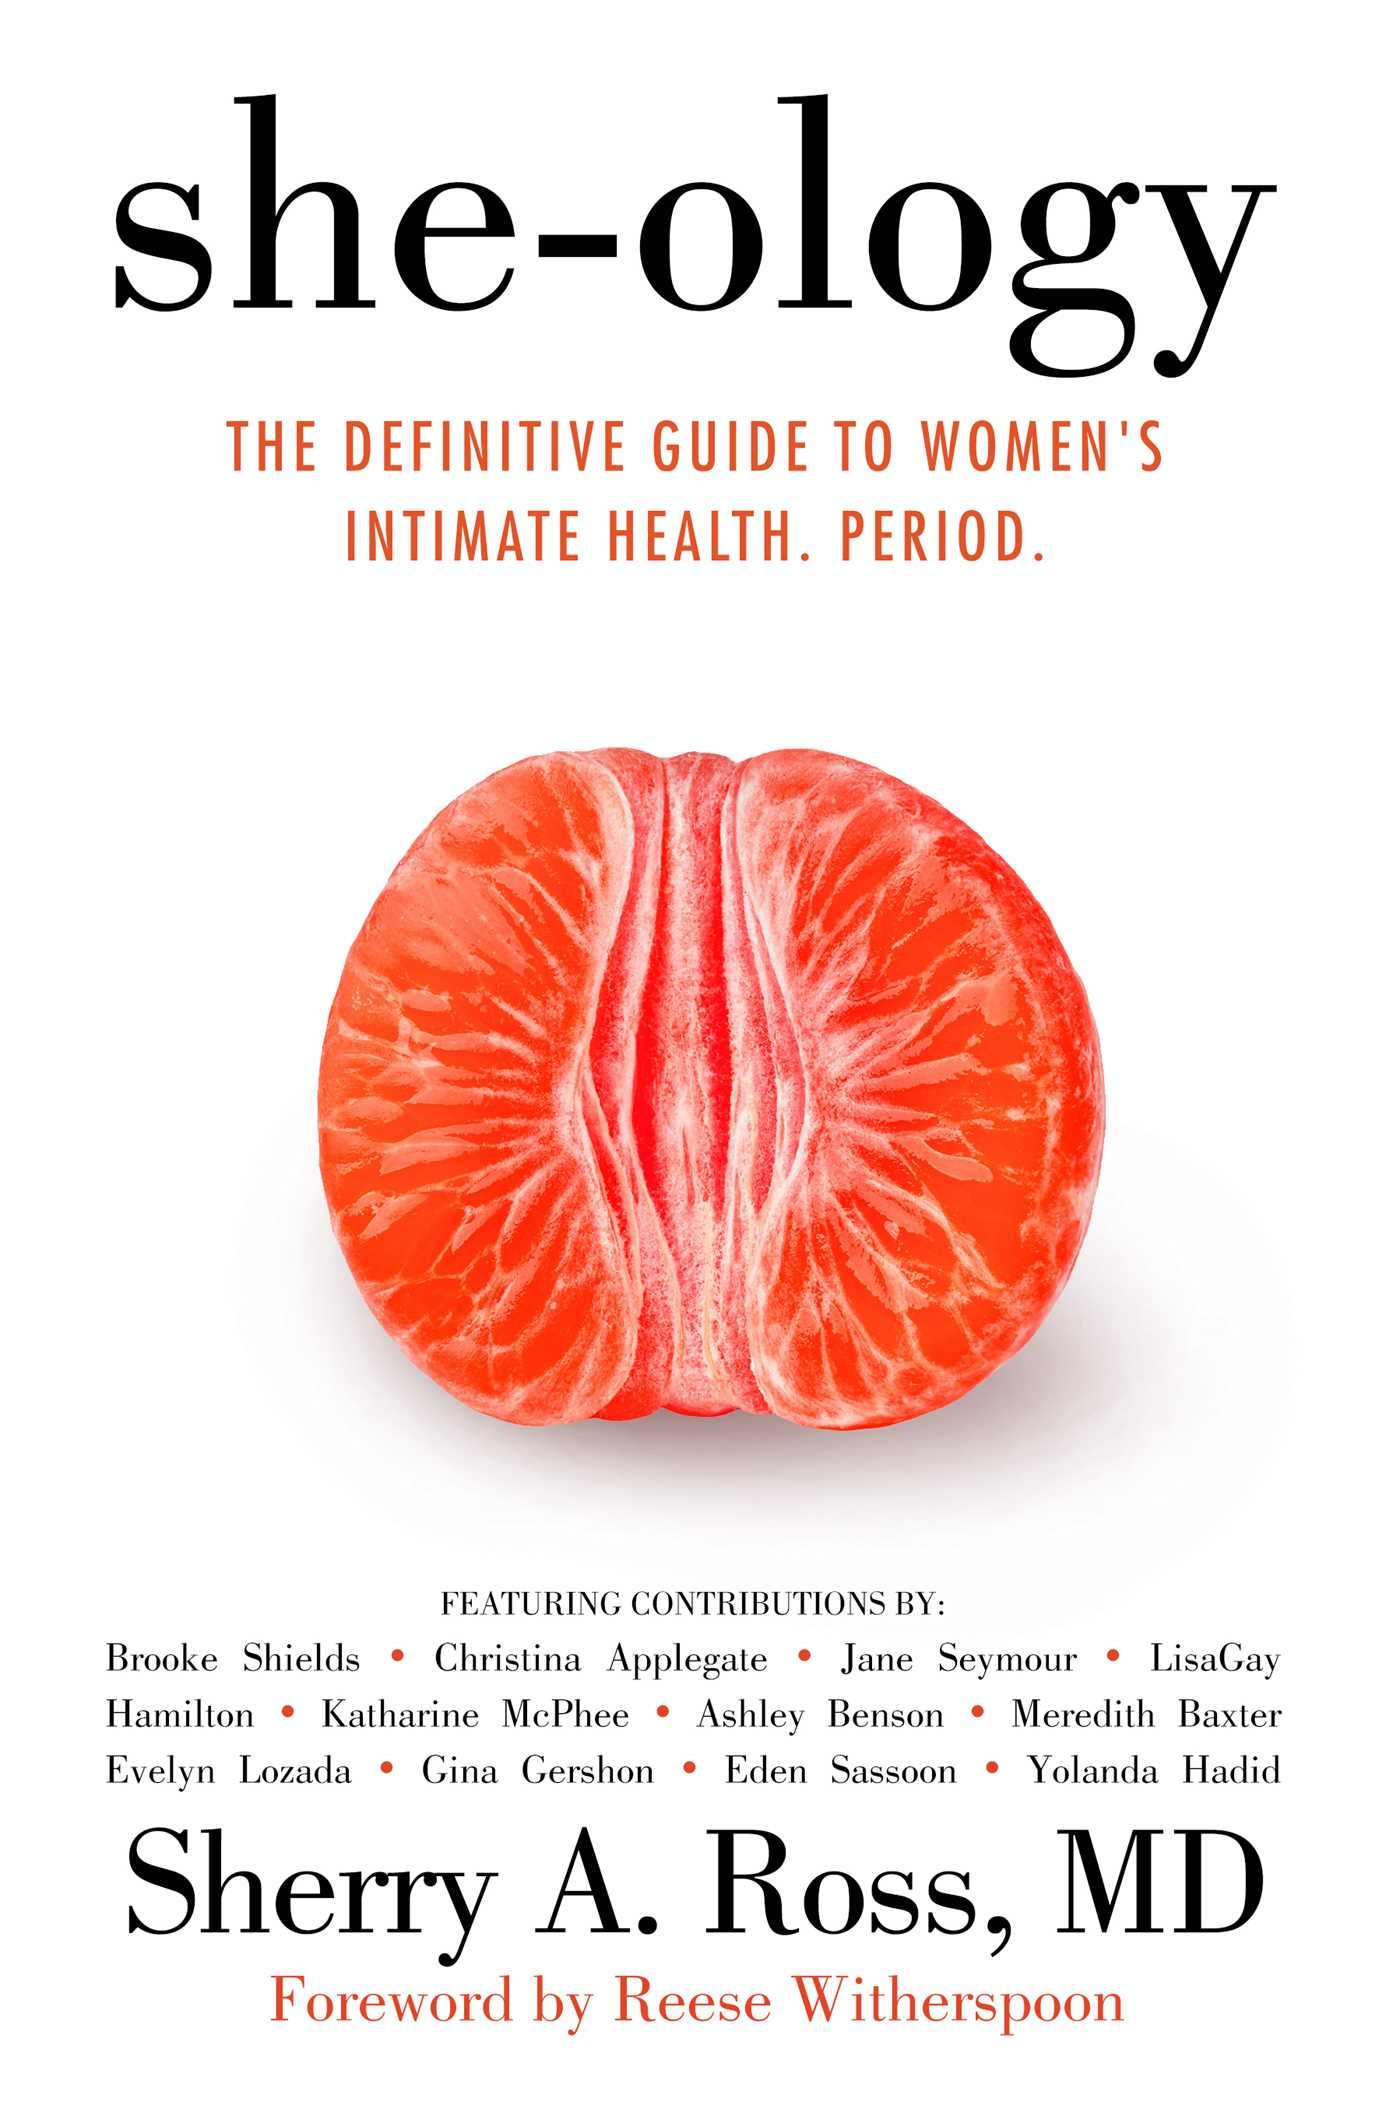 She-ology: The Definitive Guide to Women's Intimate Health. Period. by Sherry A. Ross